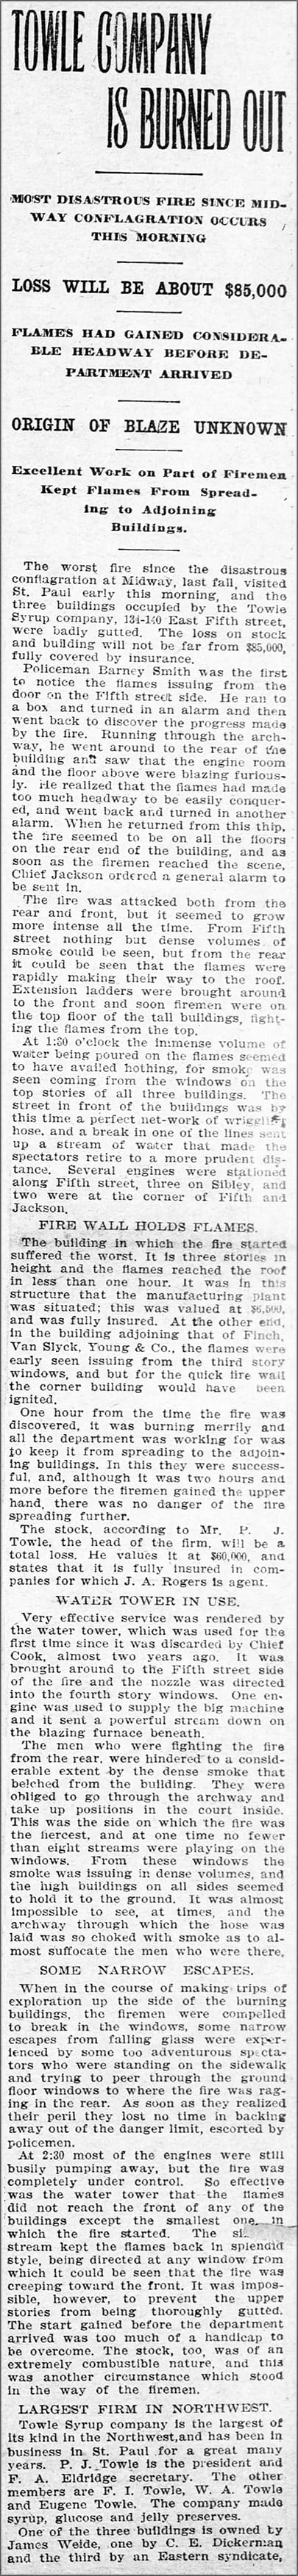 TowleBurnedOut_r__The_Saint_Paul_Globe_Tue__Apr_2__1901_